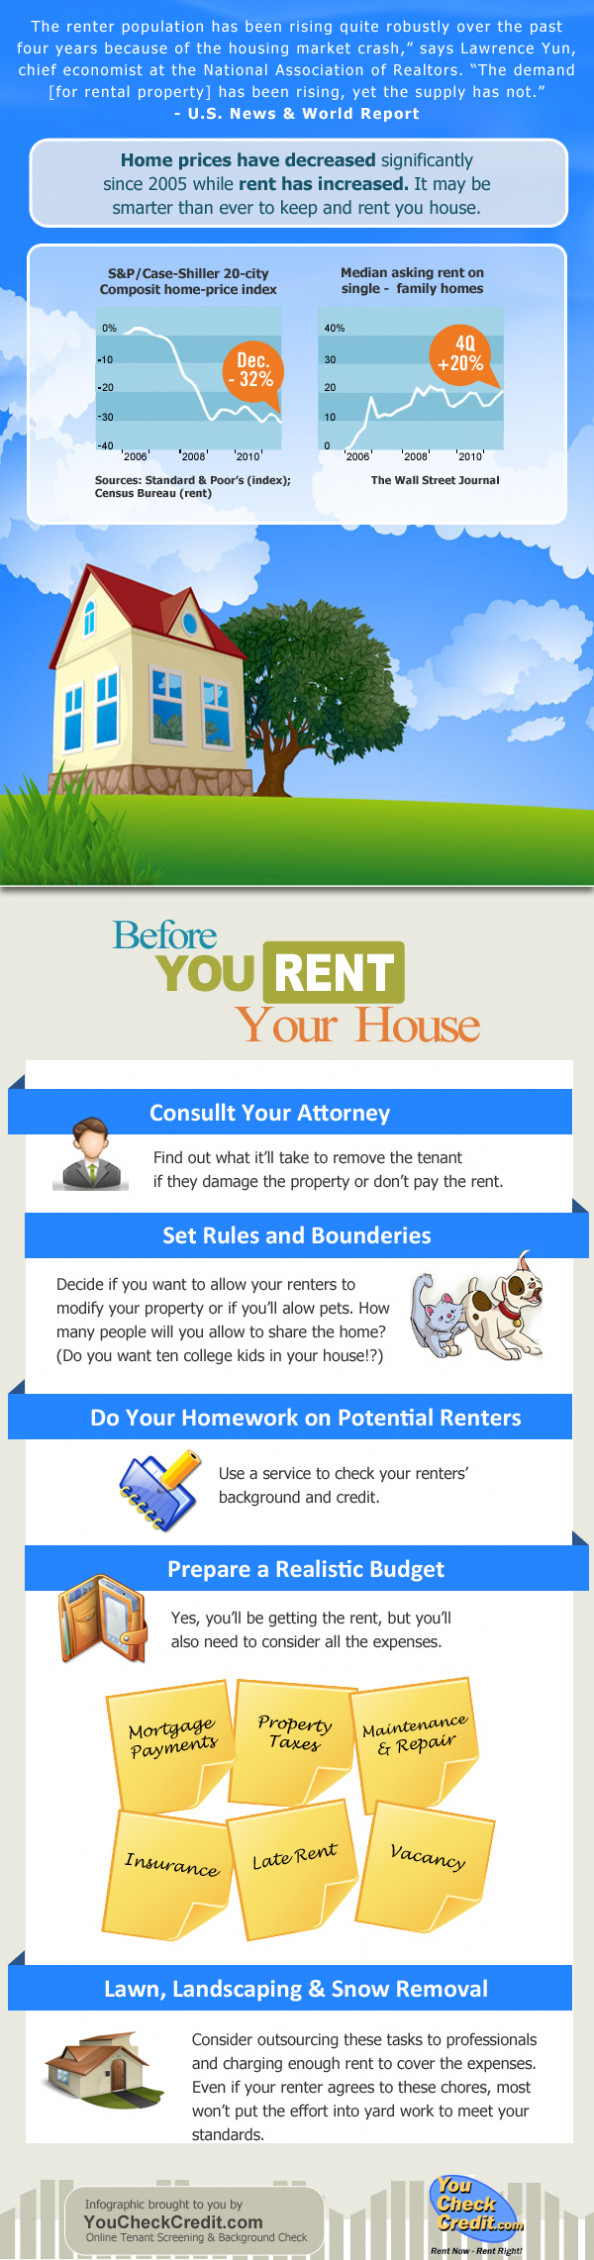 Before You Rent Your House Infographic